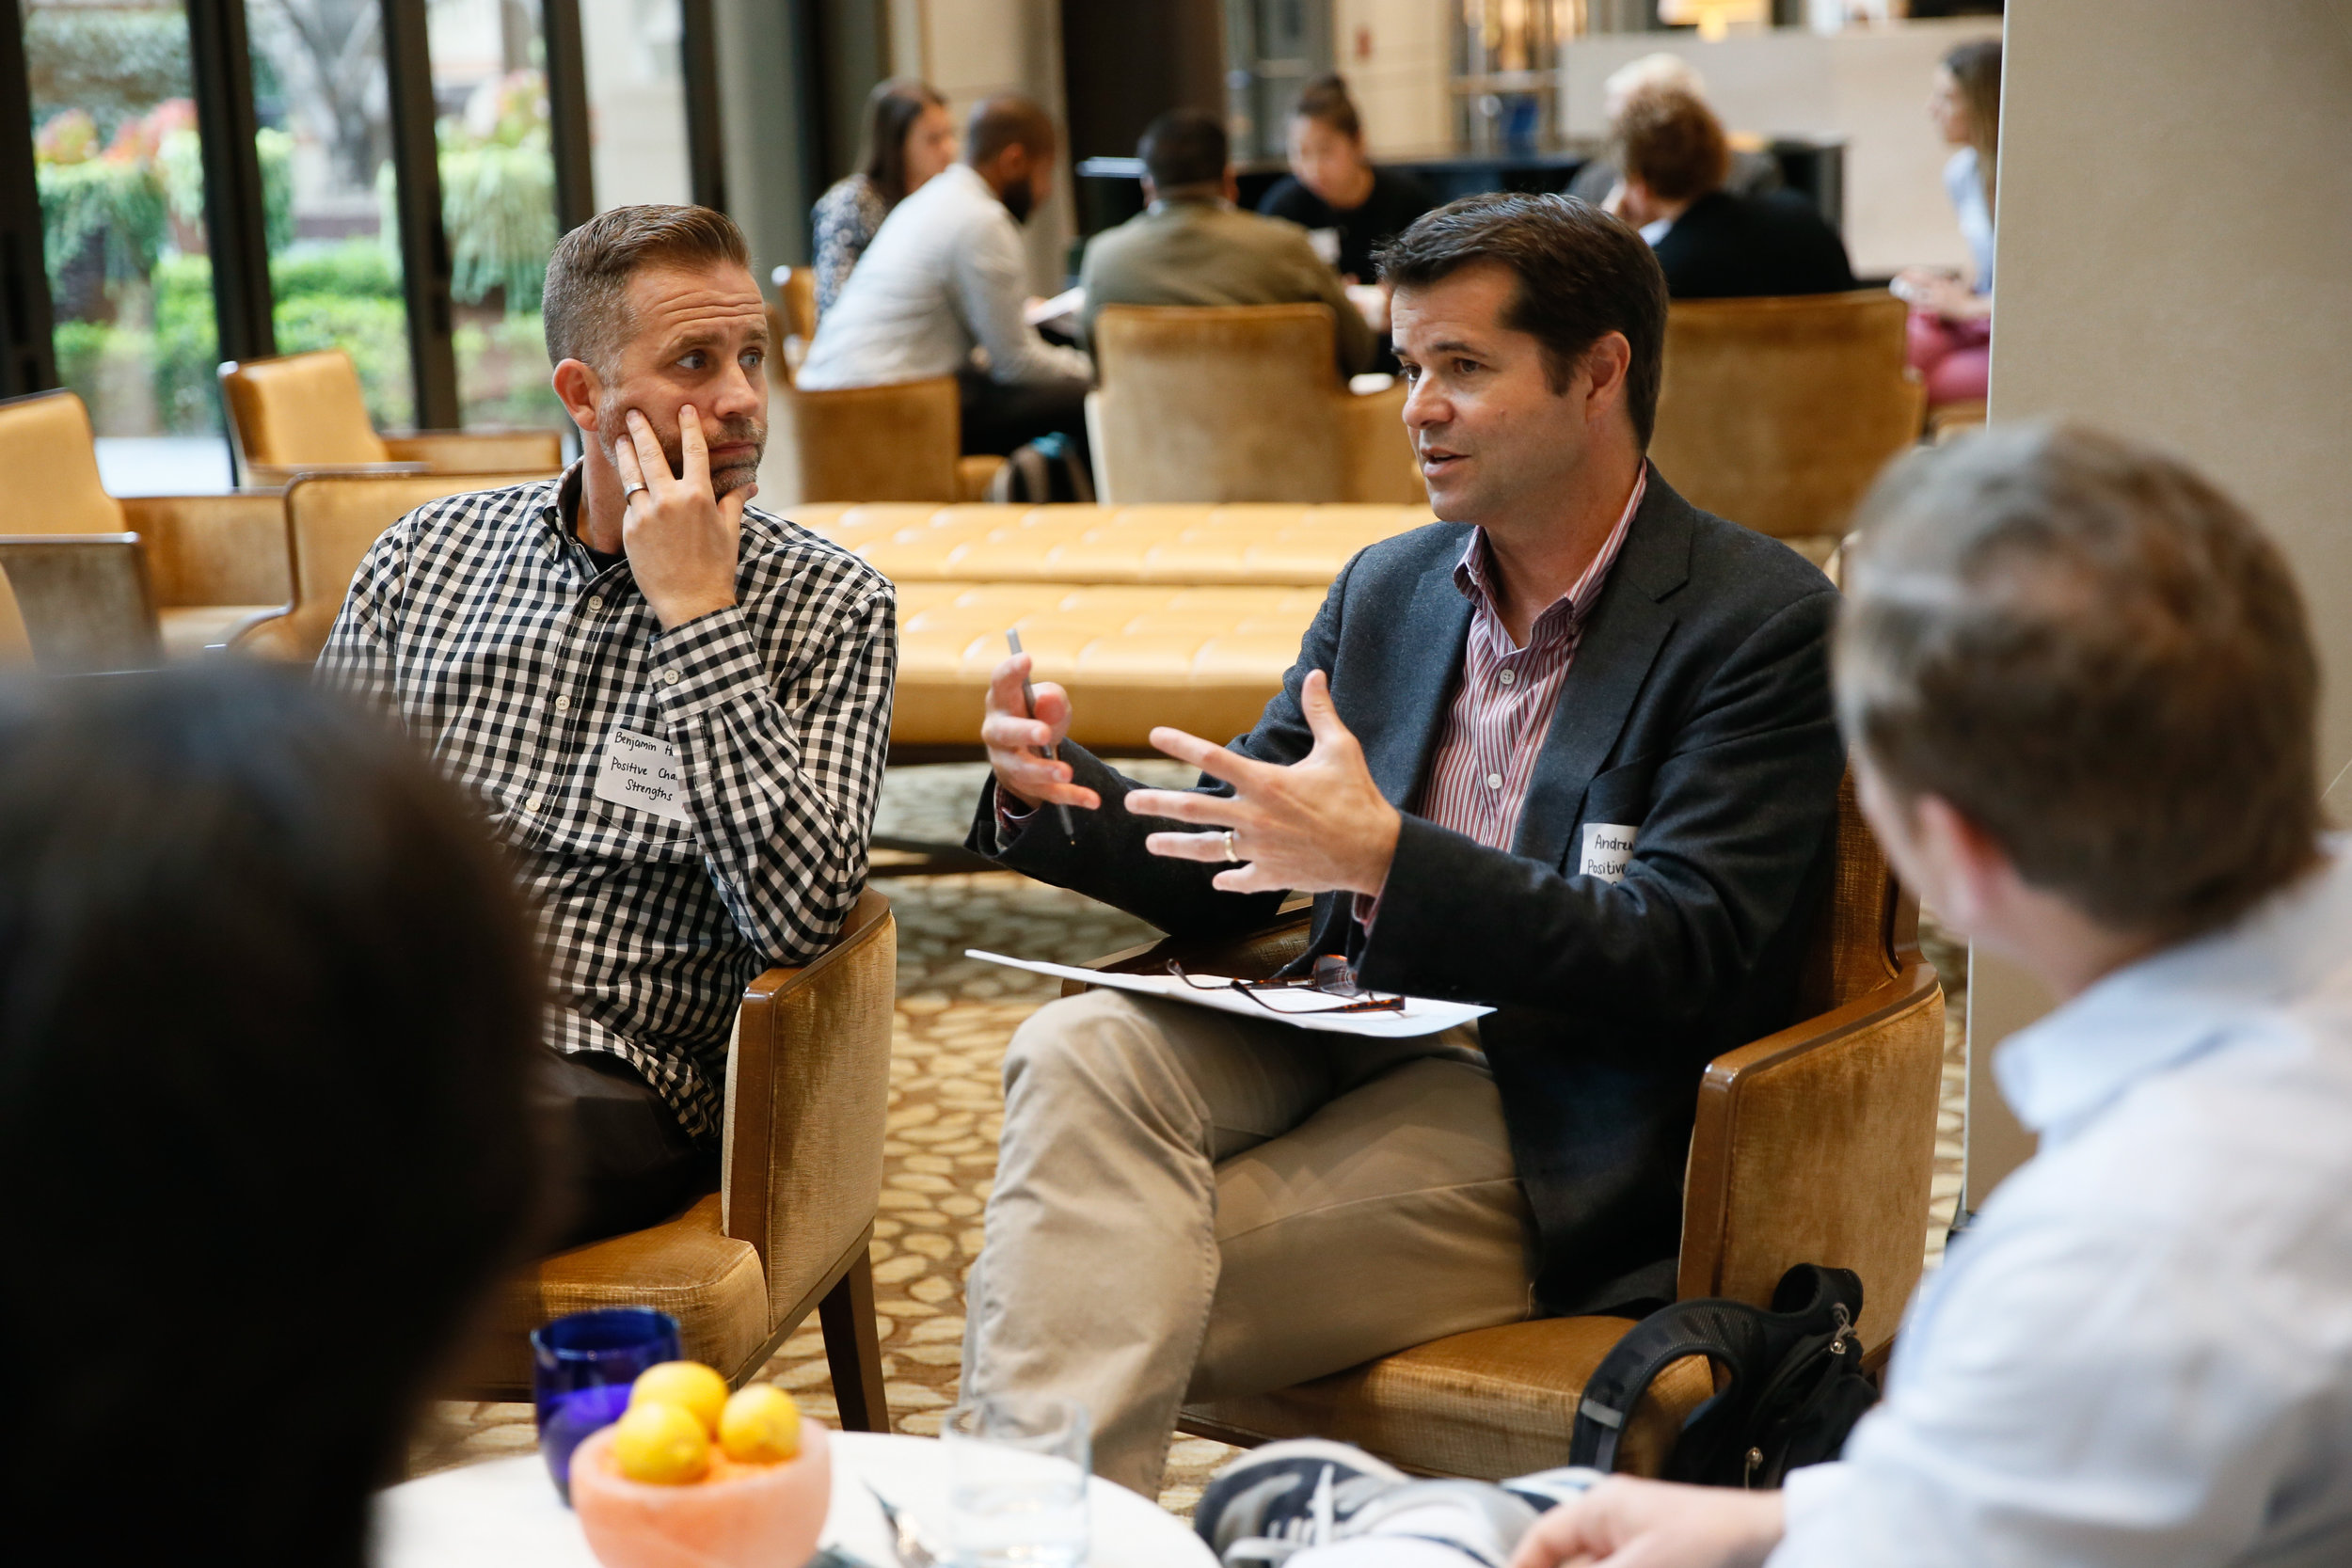 Director of Research at the USC Performance Science Institute Benjamin Houltberg (left) and UCLA Professor-in-Residence Dr. Fuligni (right) in group discussion on positive character strengths.